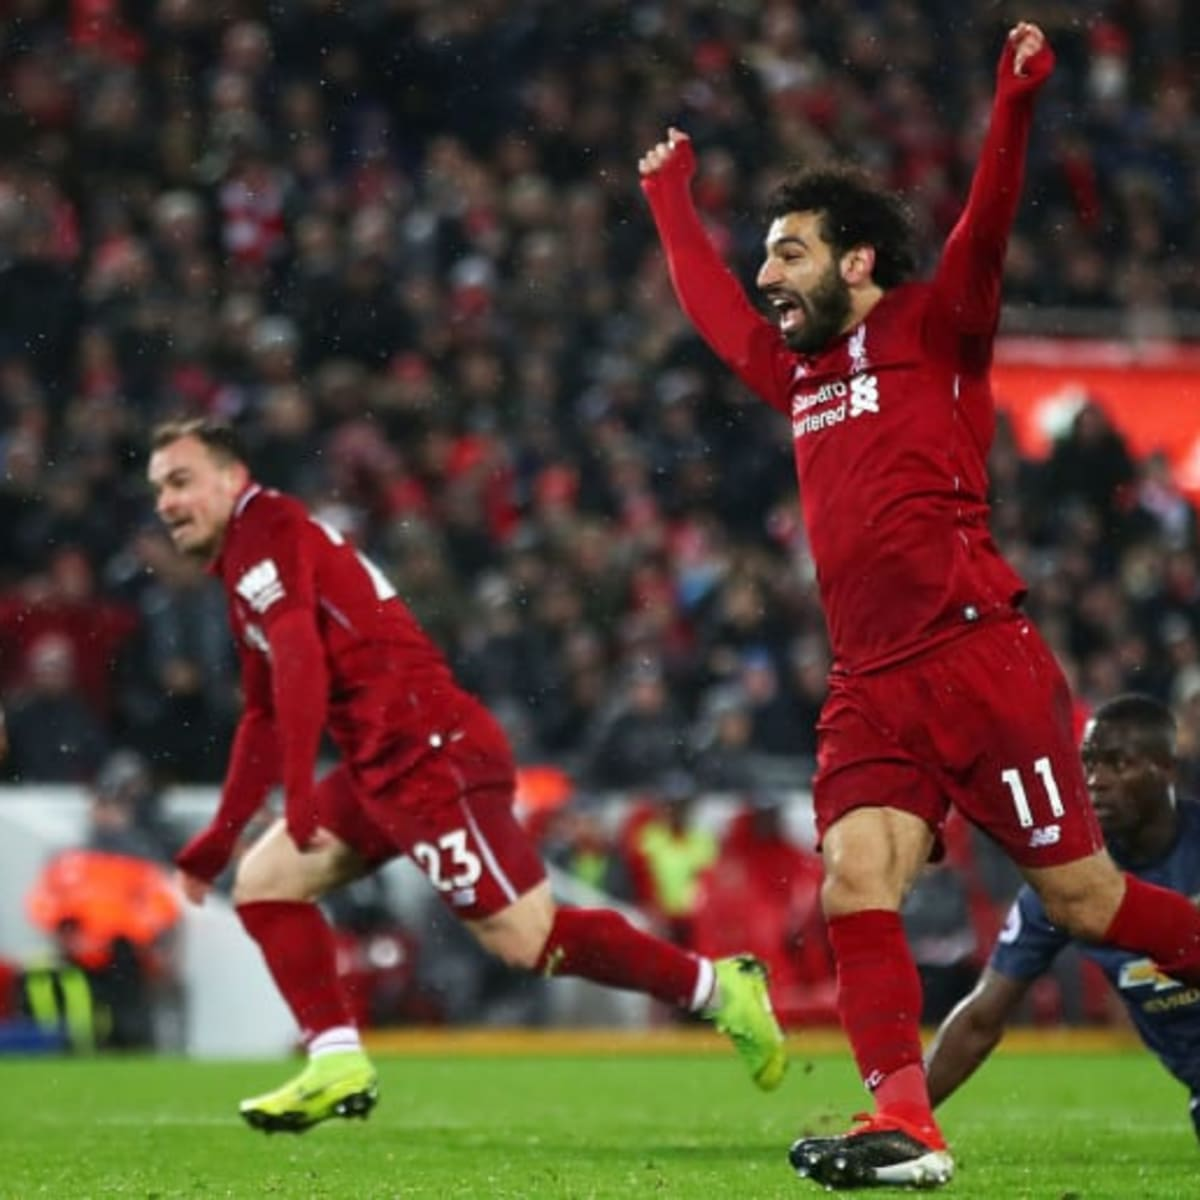 Man Utd Vs Liverpool Preview Where To Watch Live Stream Kick Off Time Team News Sports Illustrated